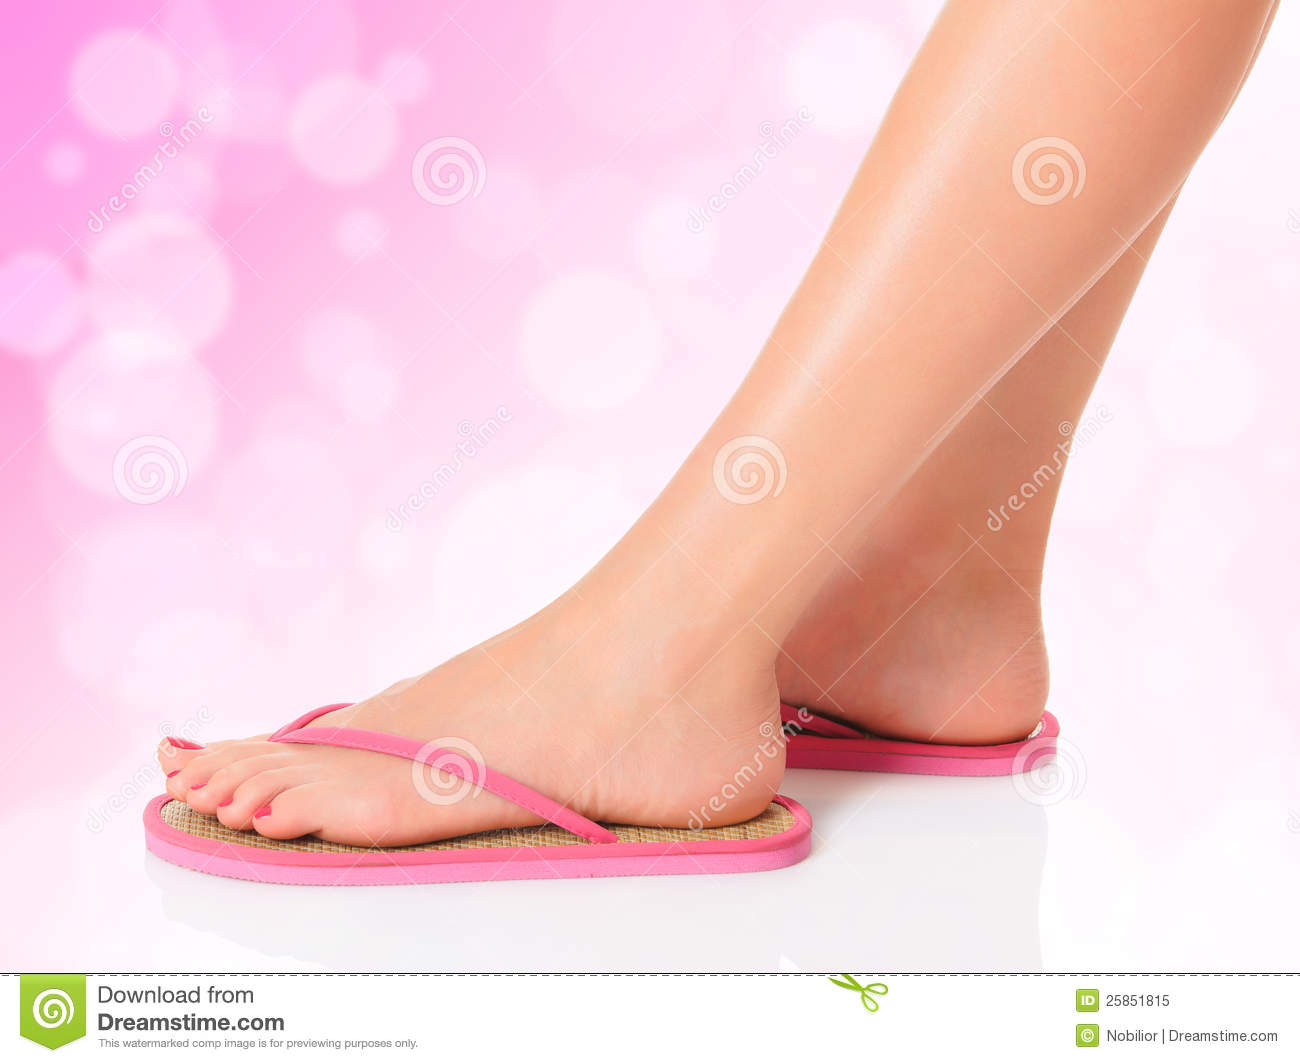 Female Feet In Pink Sandals Royalty Free Stock Photo ...